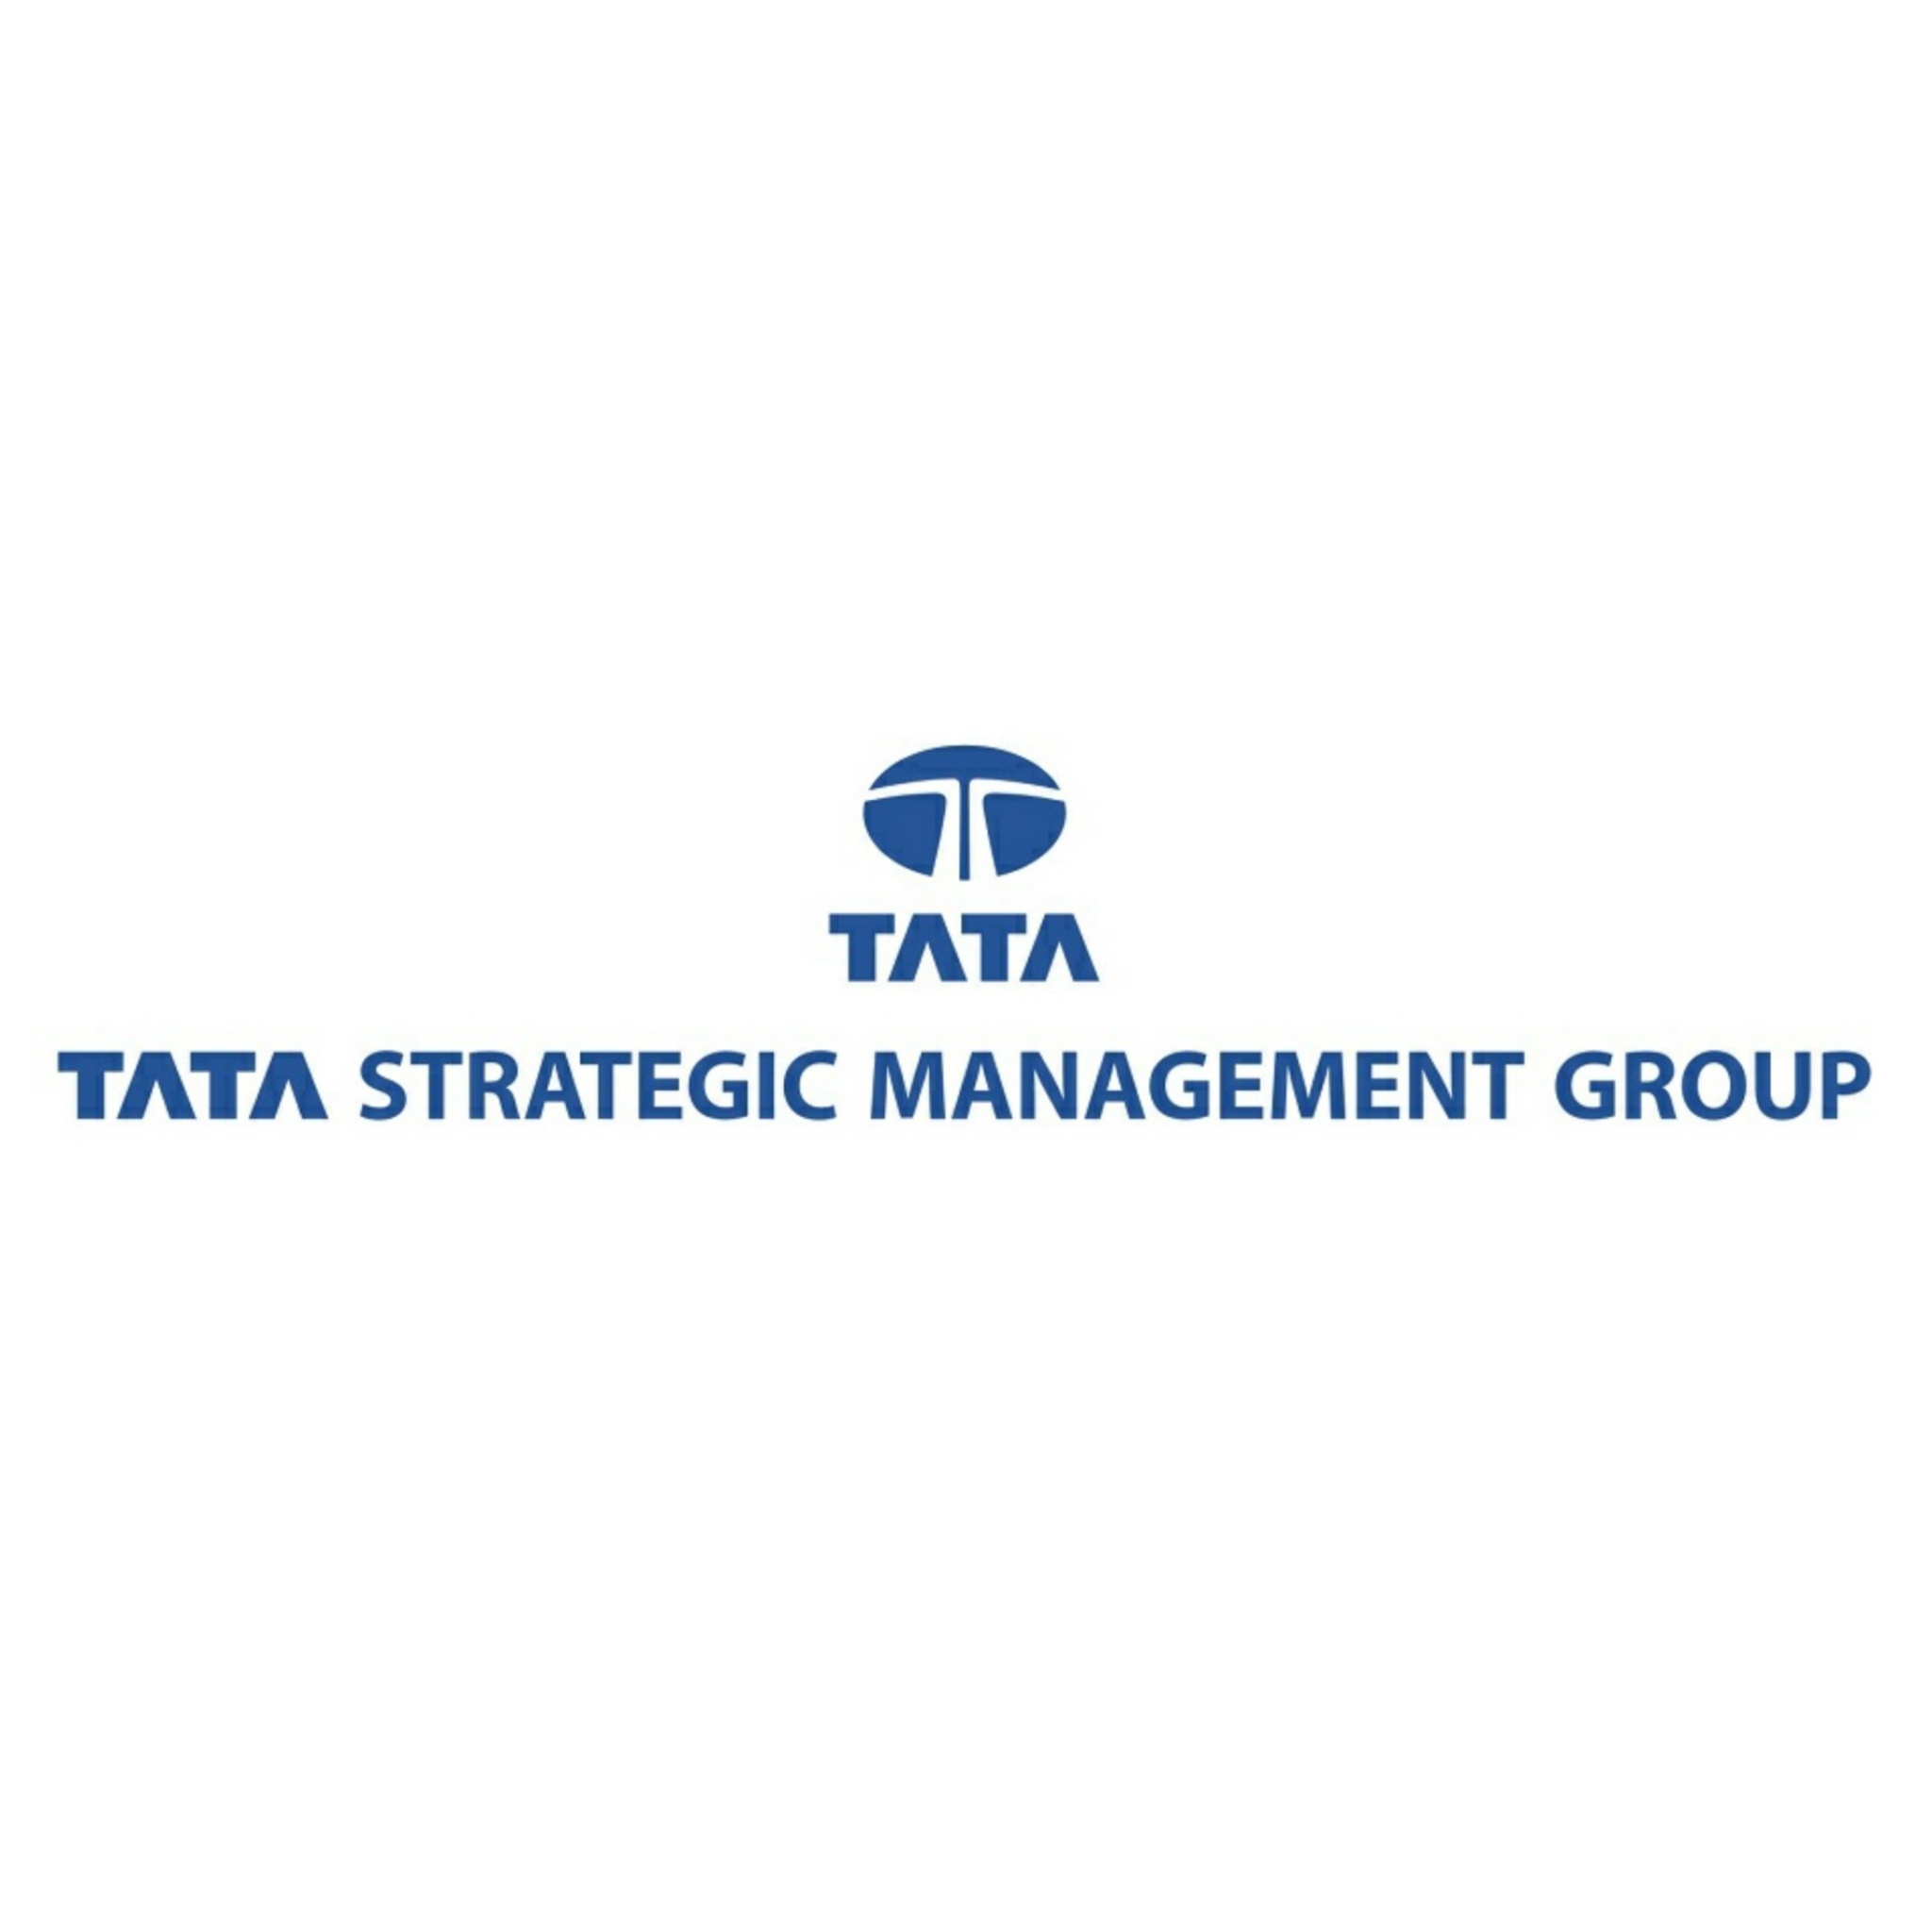 Tata Strategic Management Group Logo